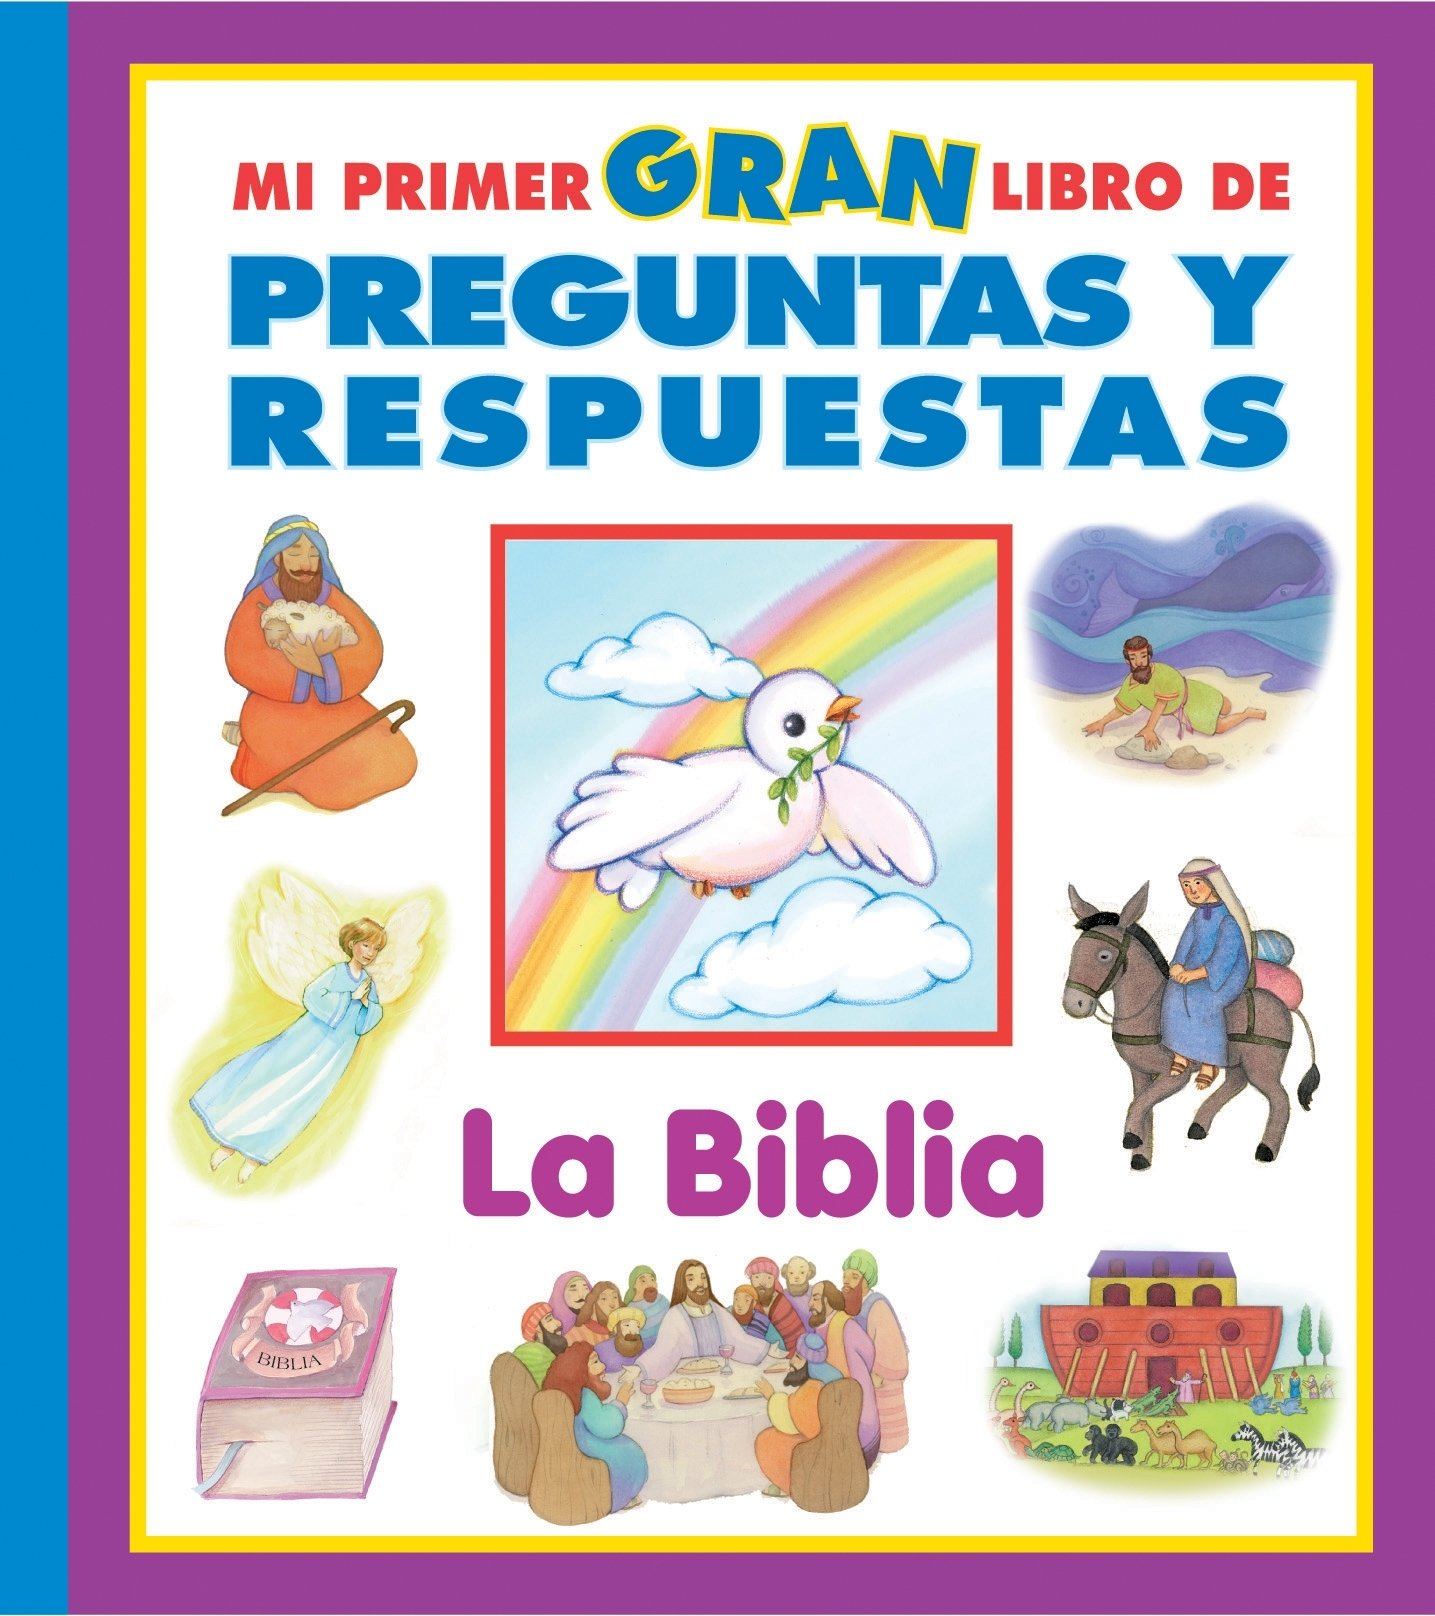 Amazon Com Mi Primer Gran Libro De Preguntas Y Respuestas La Biblia 9781412735896 Editors Of Publications International Ltd Books